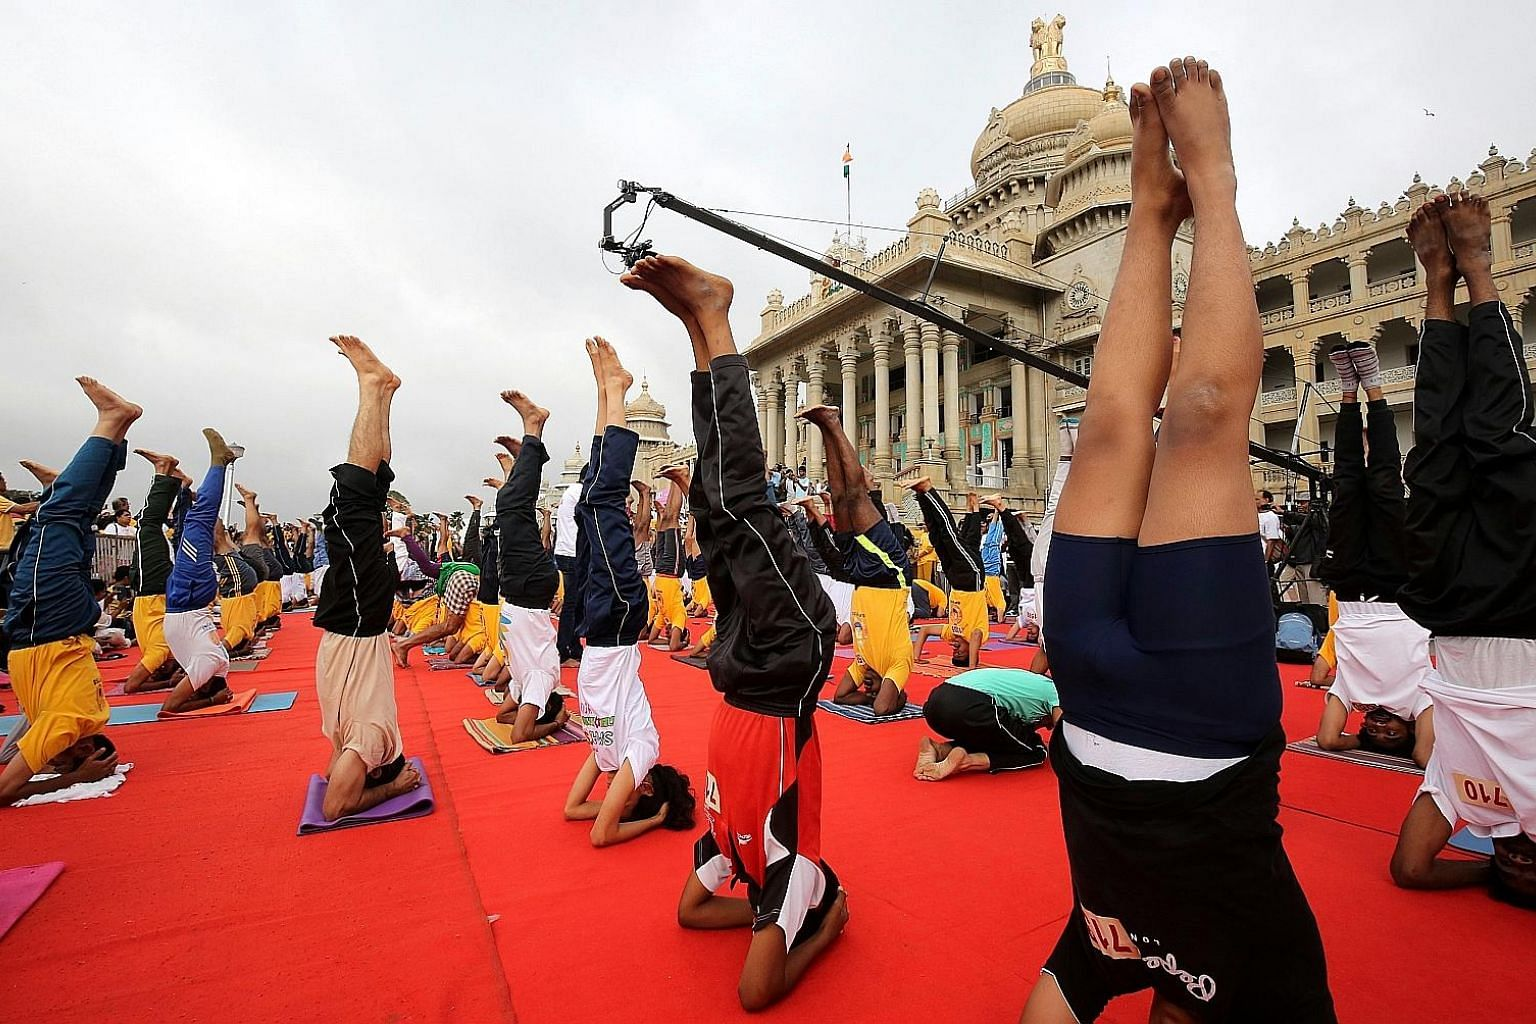 In an attempt to break a record in Bangalore, 2,000 yoga enthusiasts put mind and body to the task, performing the headstand pose for 30 seconds in front of the Vidhana Soudha - the seat of the state legislature of Karnataka, yesterday. The event was